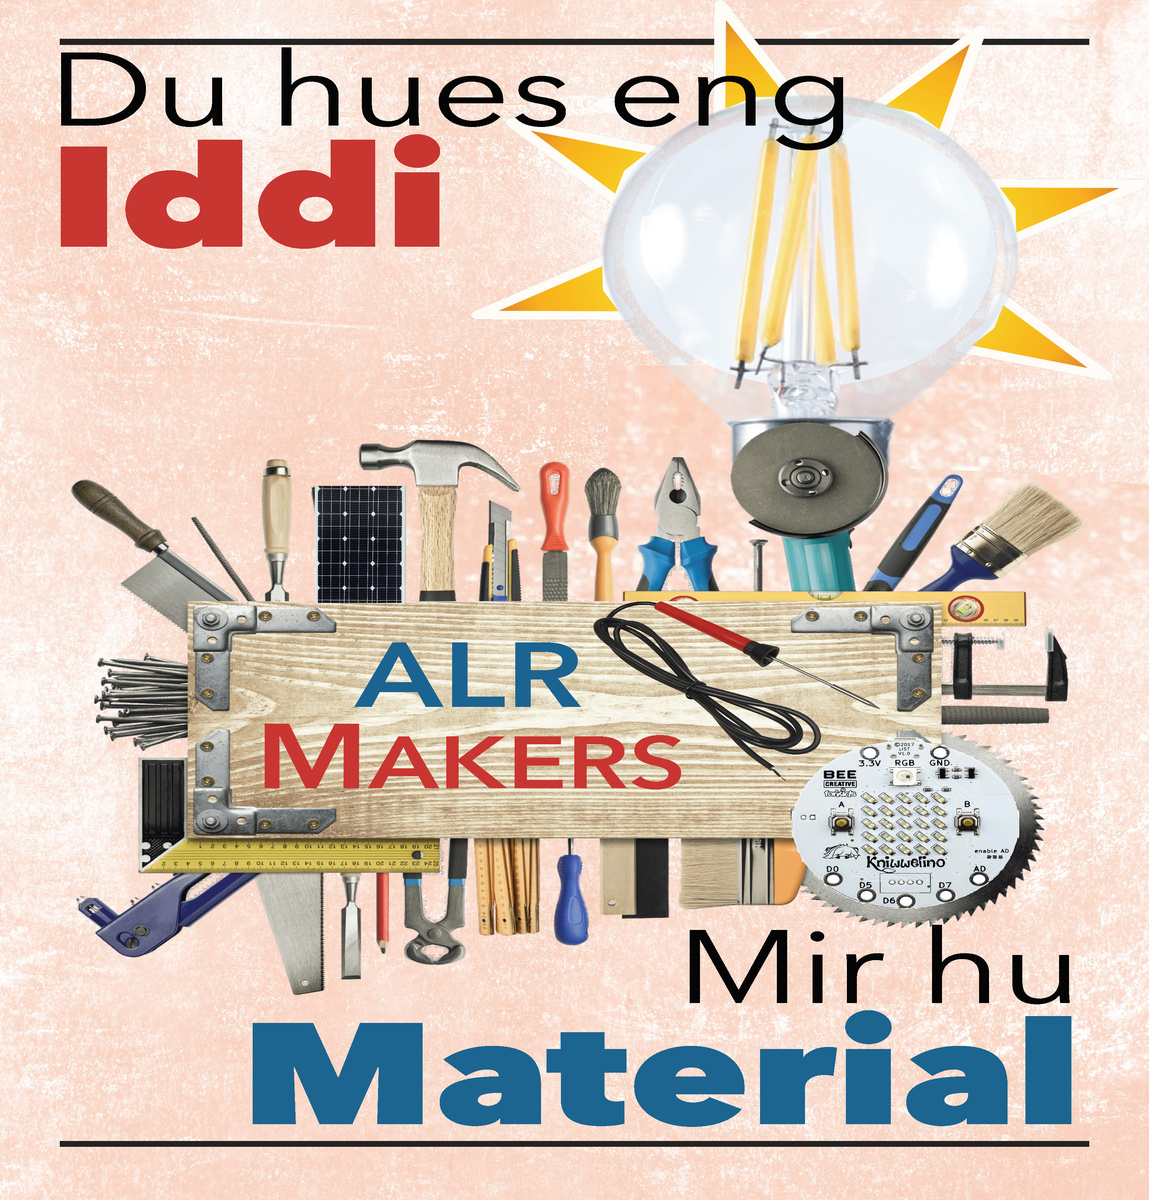 makerspace_ALR